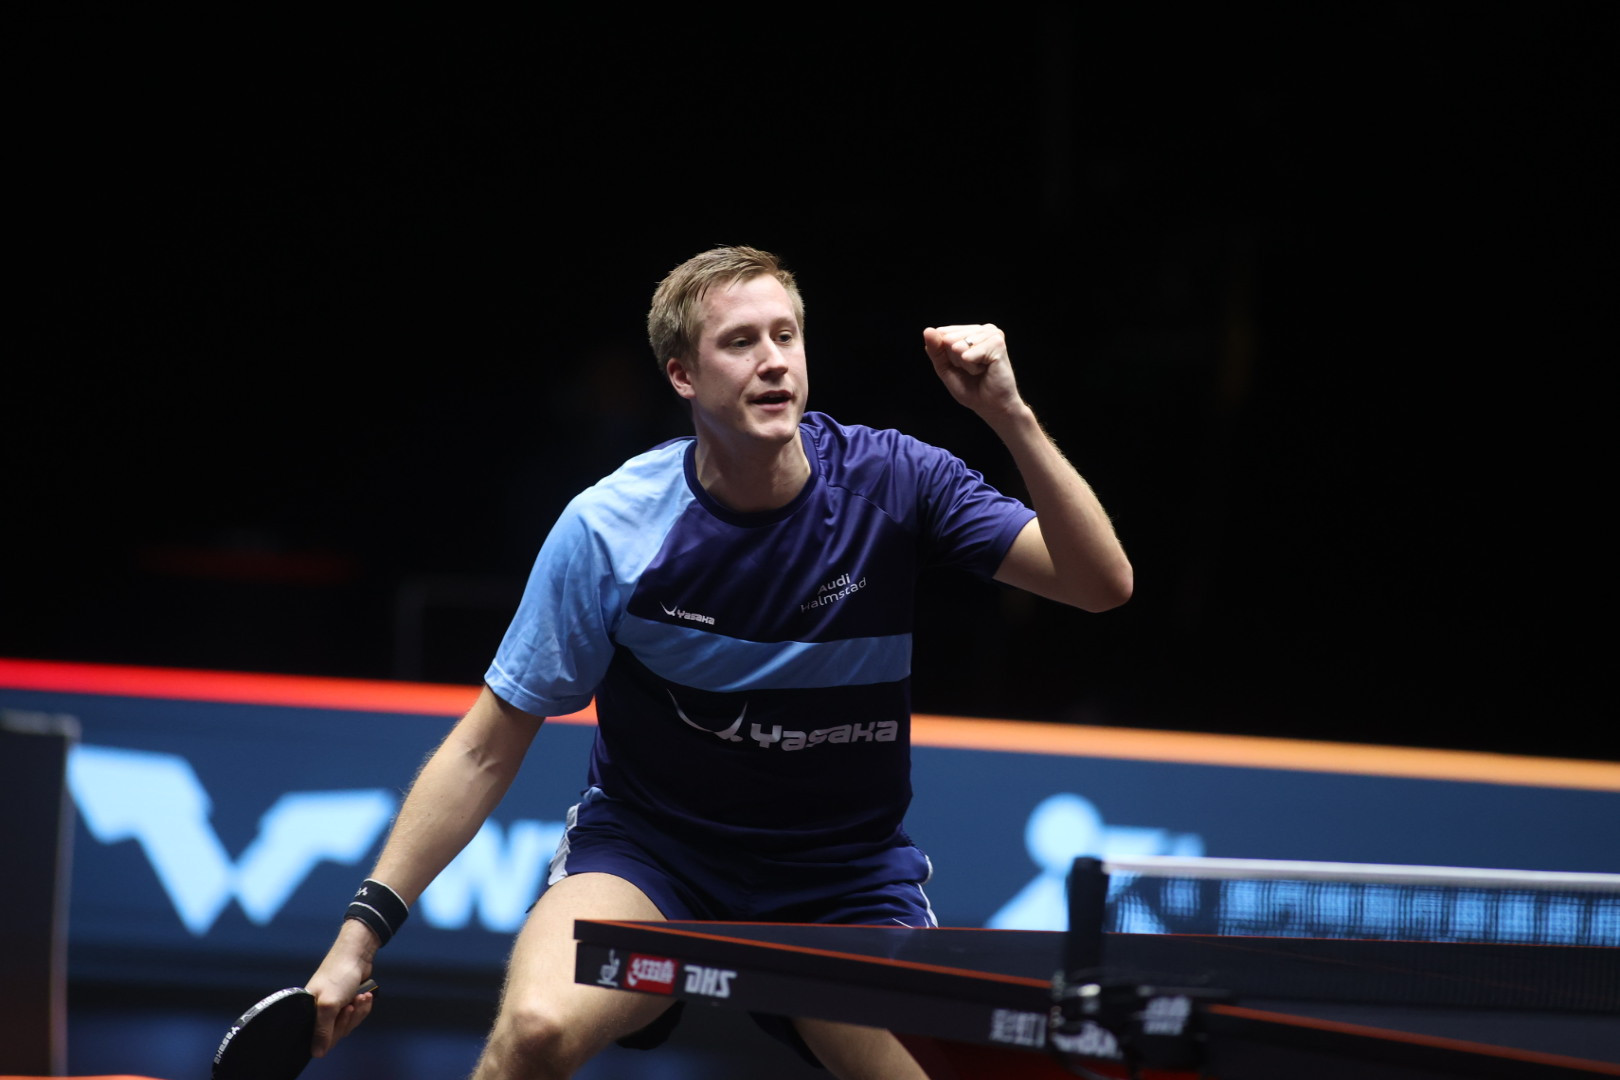 Falck records first win over Xu to reach World Table Tennis Macao semi-finals